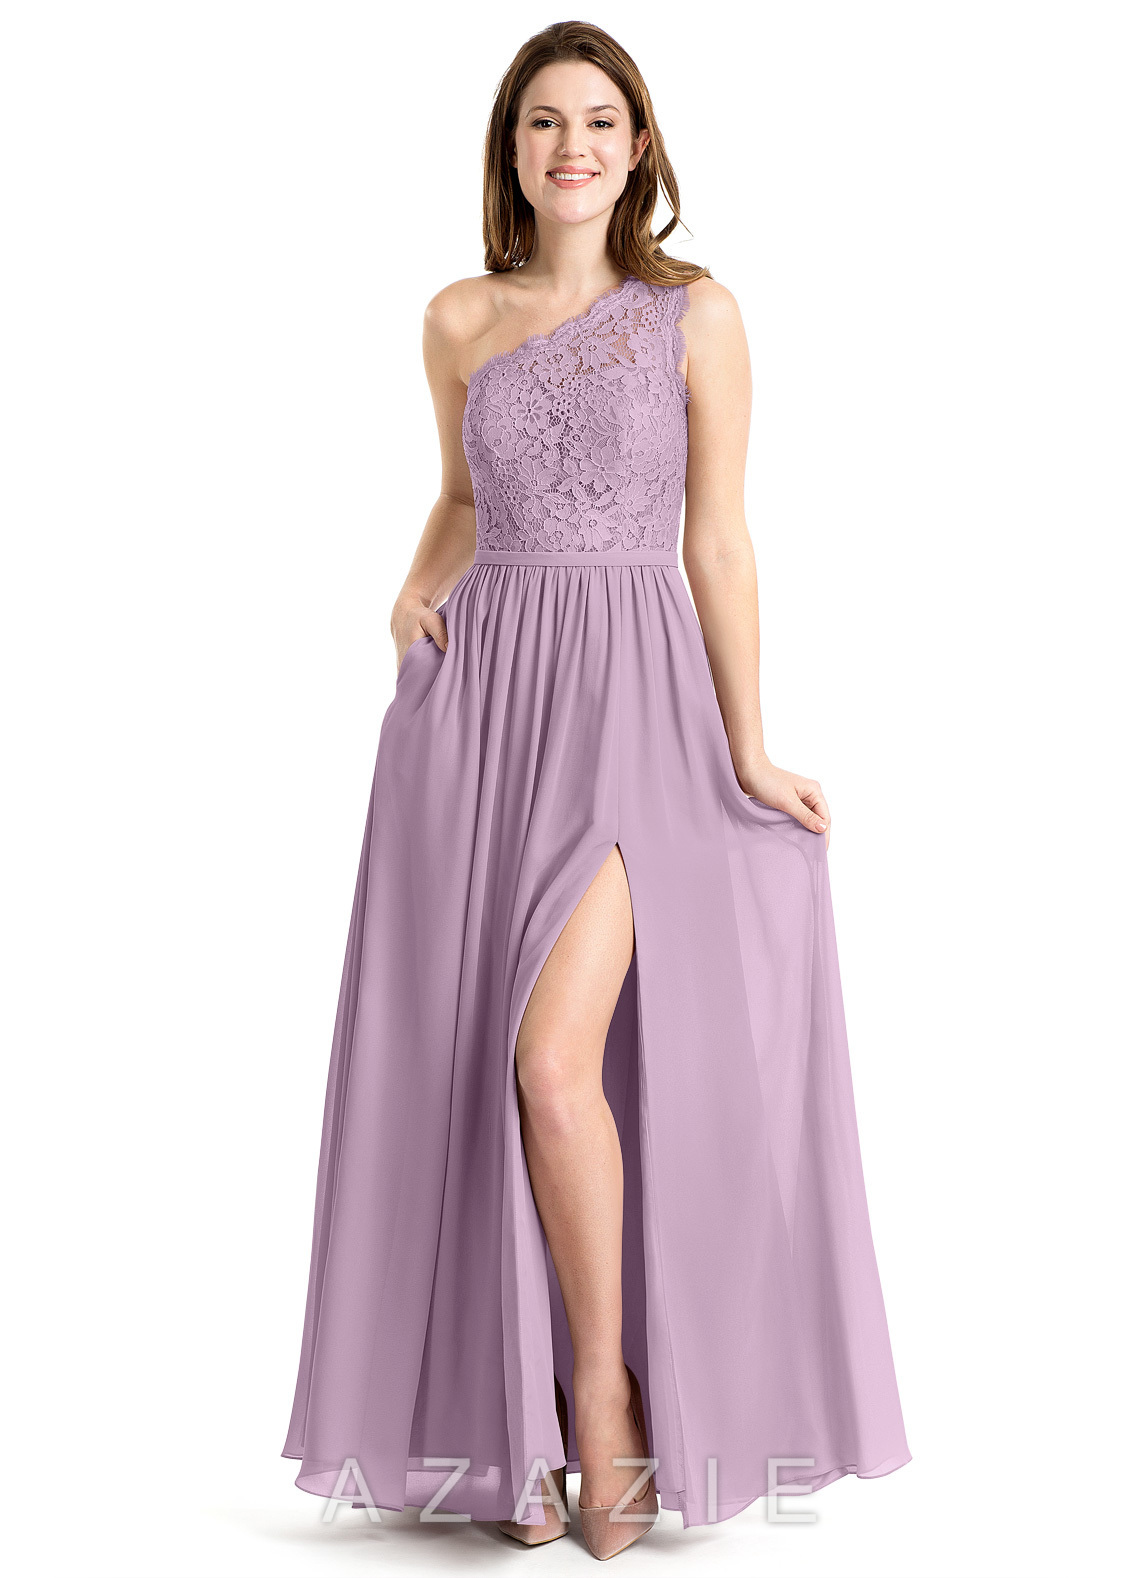 81dbf0dd321 Azazie Demi Bridesmaid Dress